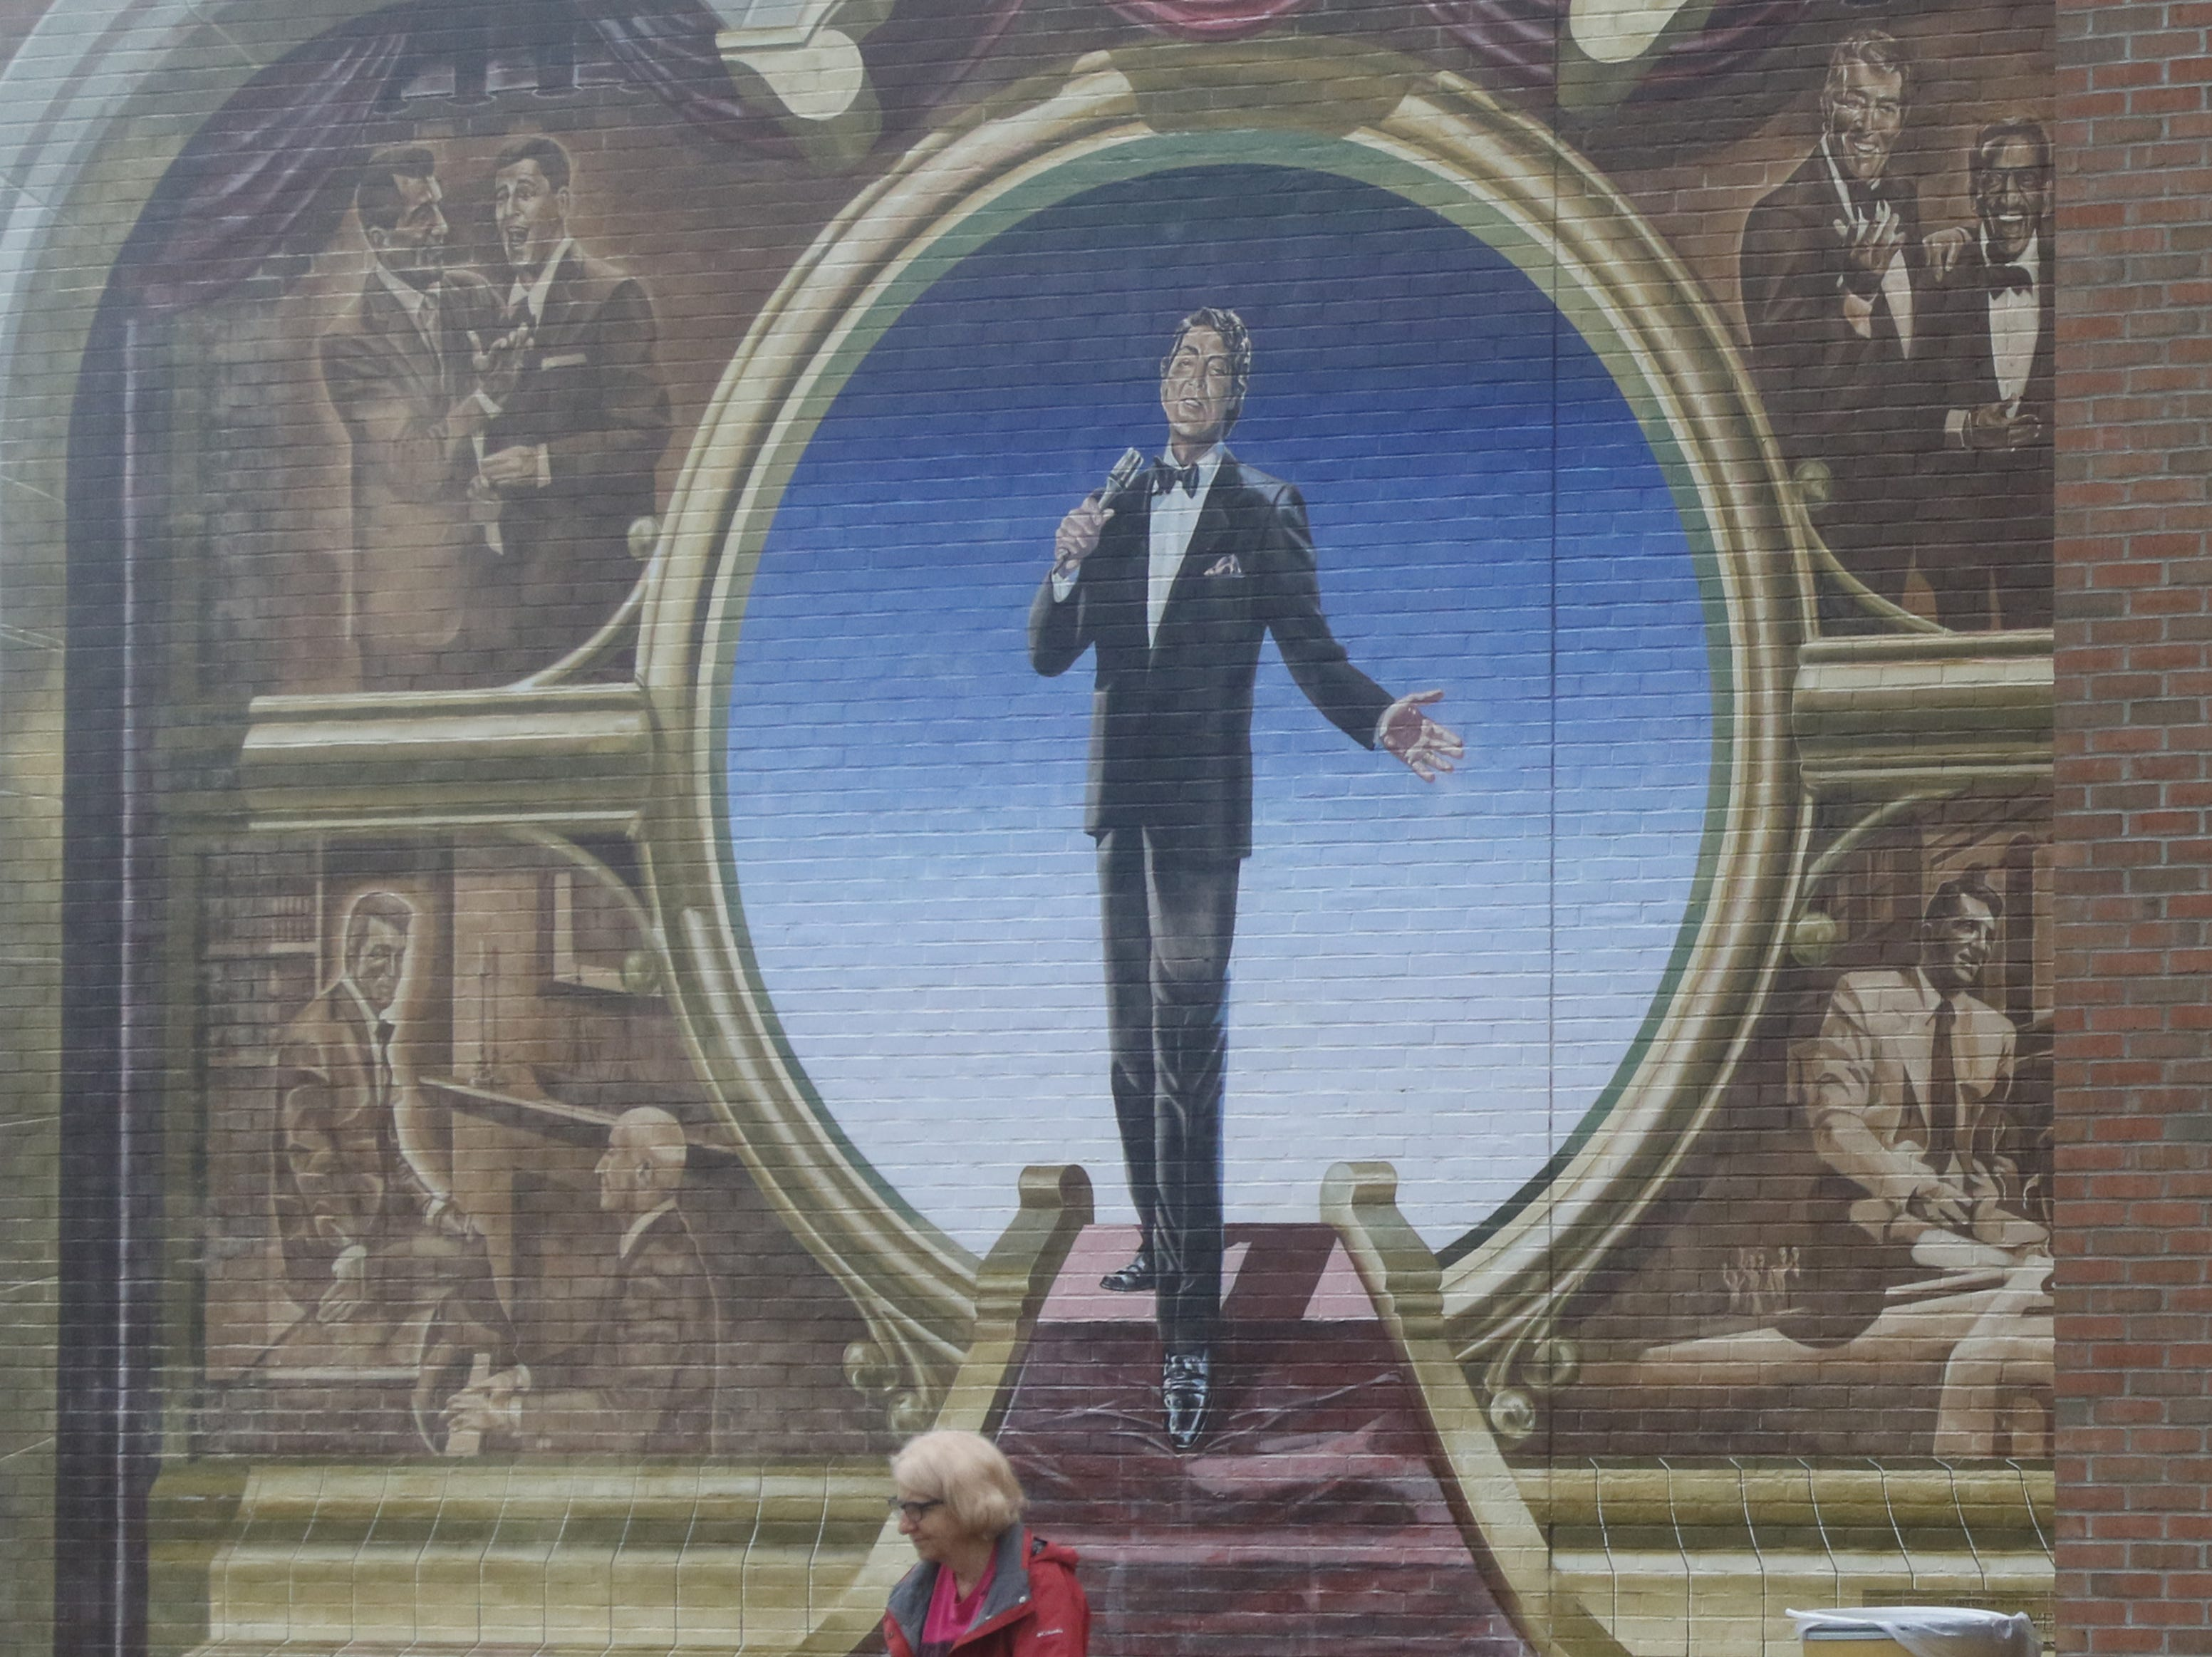 A mural of Dean Martin greets shoppers as they purchase groceries at a Kroger's Supermarket in Steubenville, OhioDean Martin was born and raised in Steubenville.